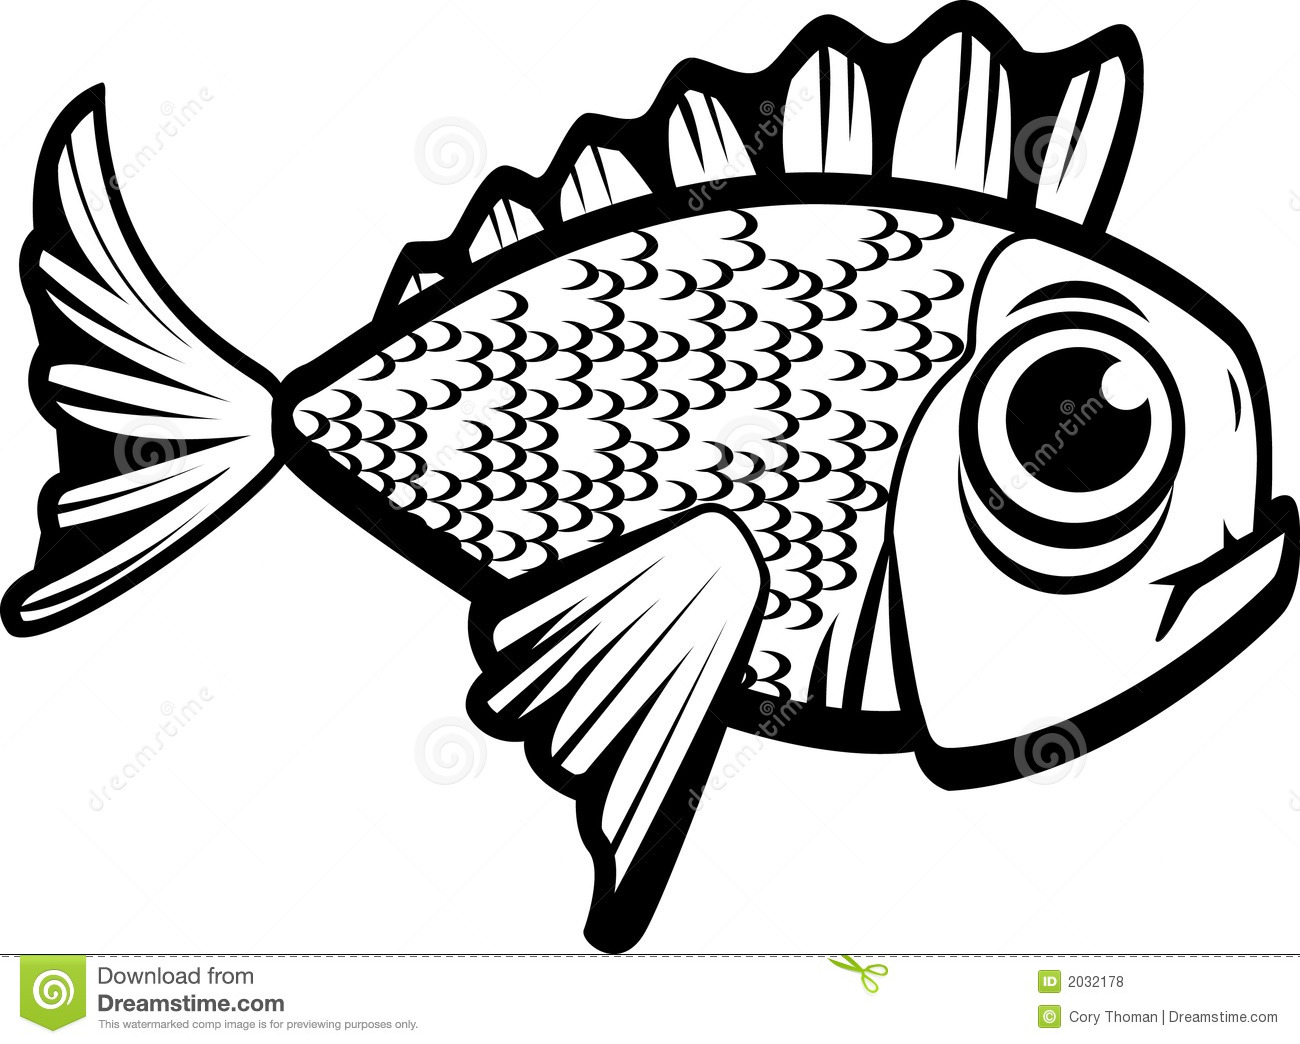 Fish Black And White Royalty Free Stock Photos - Image: 2032178